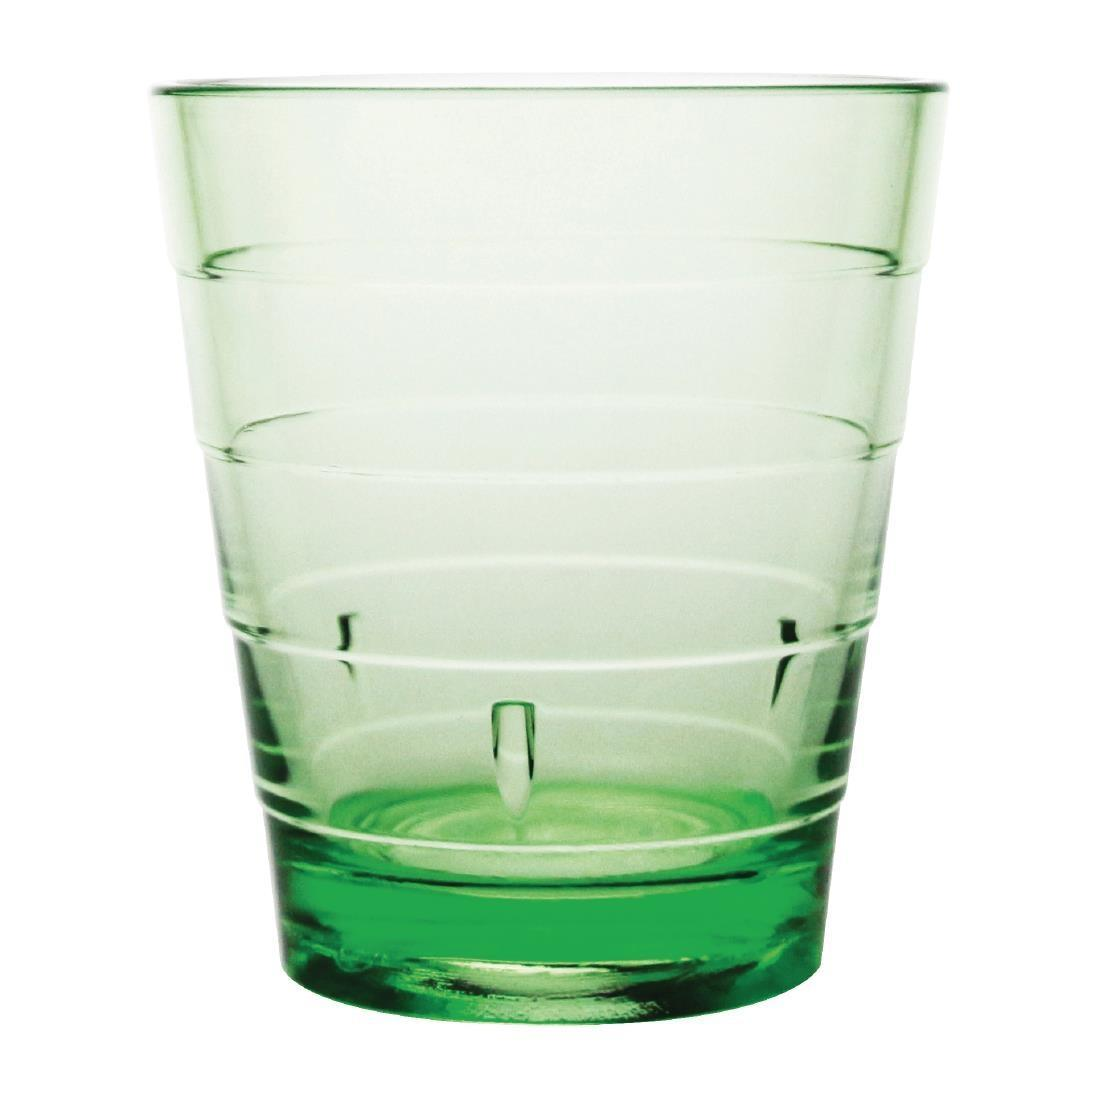 Kristallon Polycarbonate Ringed Tumbler Green 285ml - Case 6 - DC922